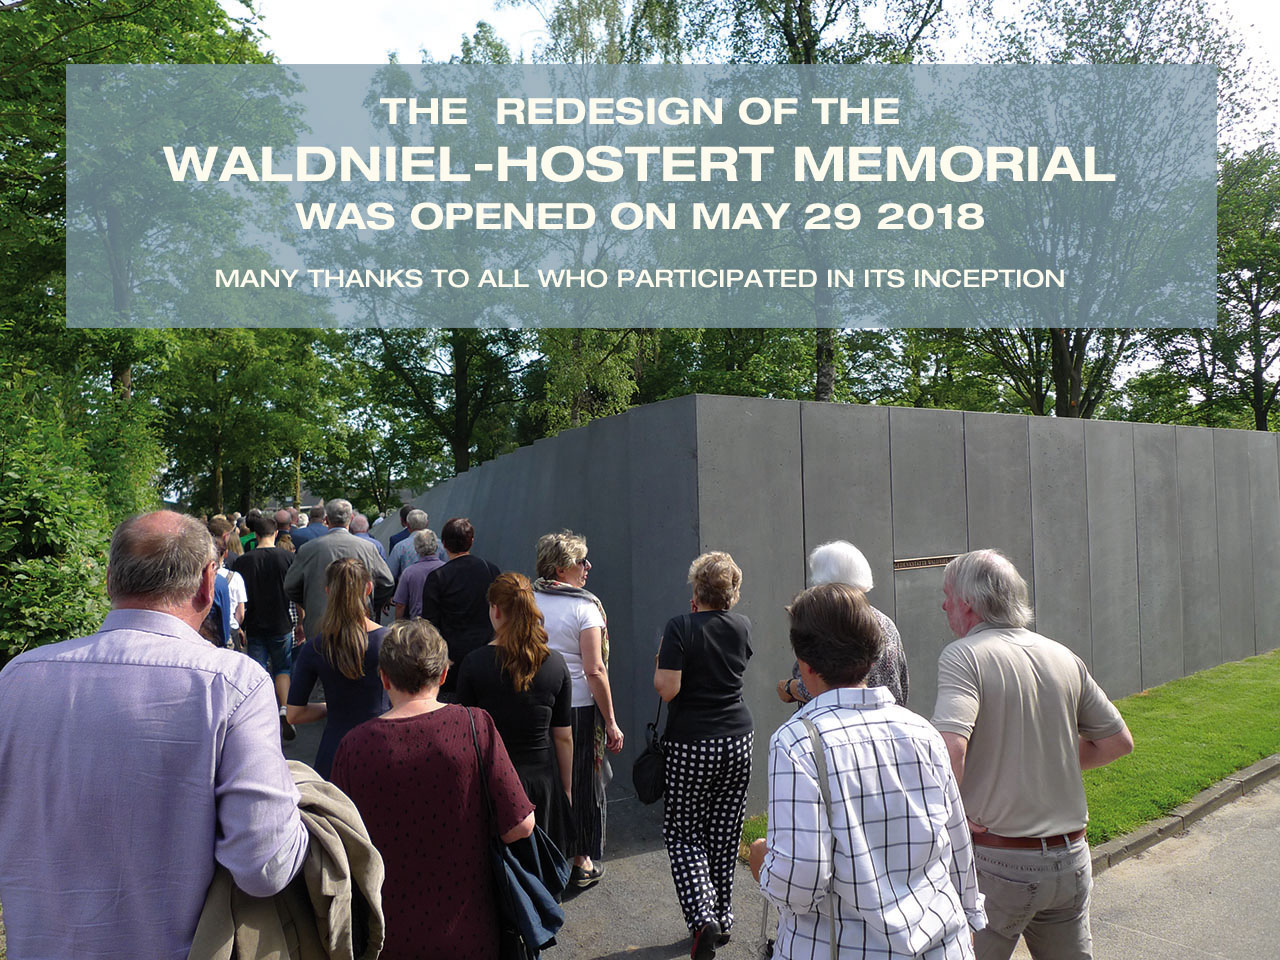 The Redesign of the Waldniel-Hostert Memorial was opened on May 29 2018 - Many thanks to all who participated in its Inception